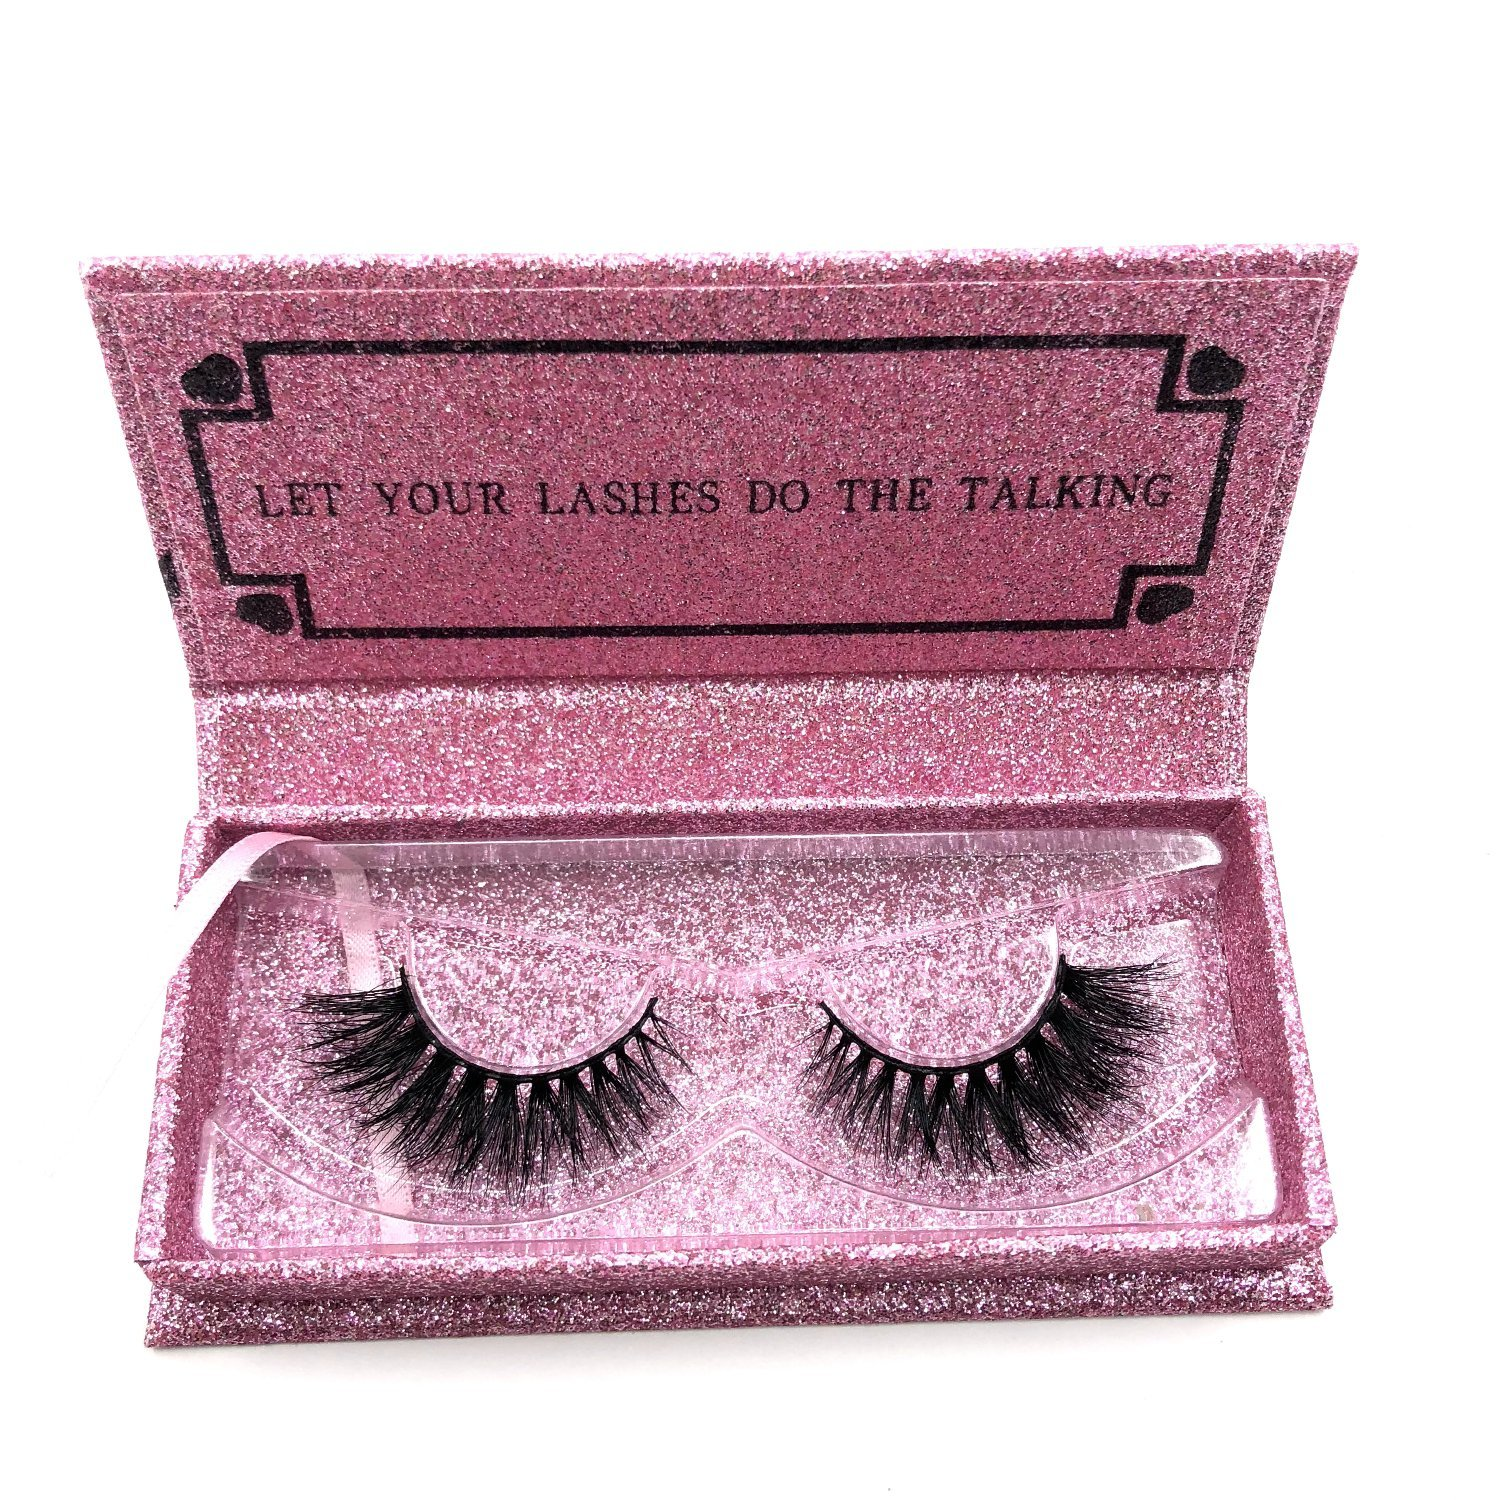 cf7b48c4e96 Amazon.com : Mikiwi 3D Mink Lashes DA004 Premium Quality Reusable Handmade  Cruelty Free Siberian Mink Fur Hair Long Thick Dramatic Look Fake Lashes :  Beauty